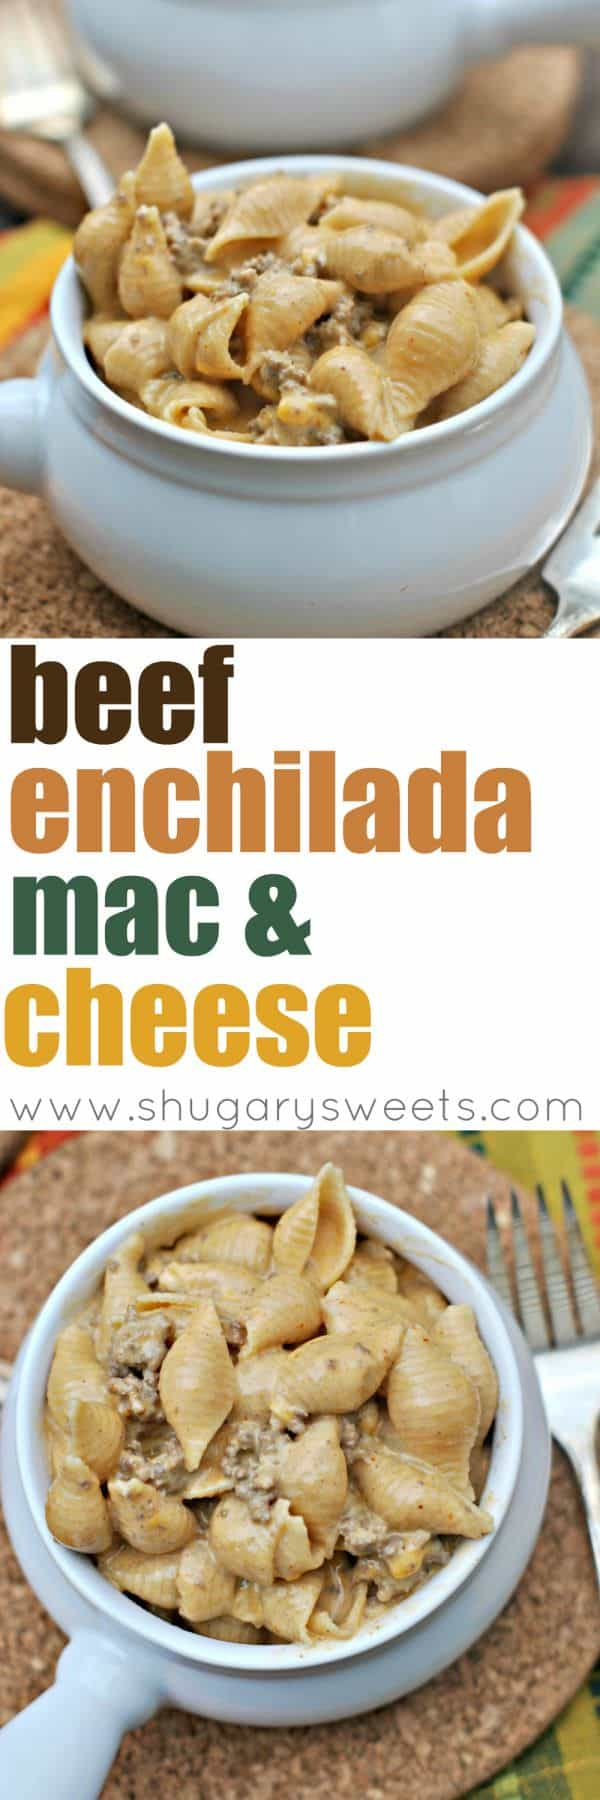 Getting three servings of Dairy each day is a goal for my family. Easy Stovetop Enchilada Mac and Cheese helps meet this goal! Dinner in 30 minutes!